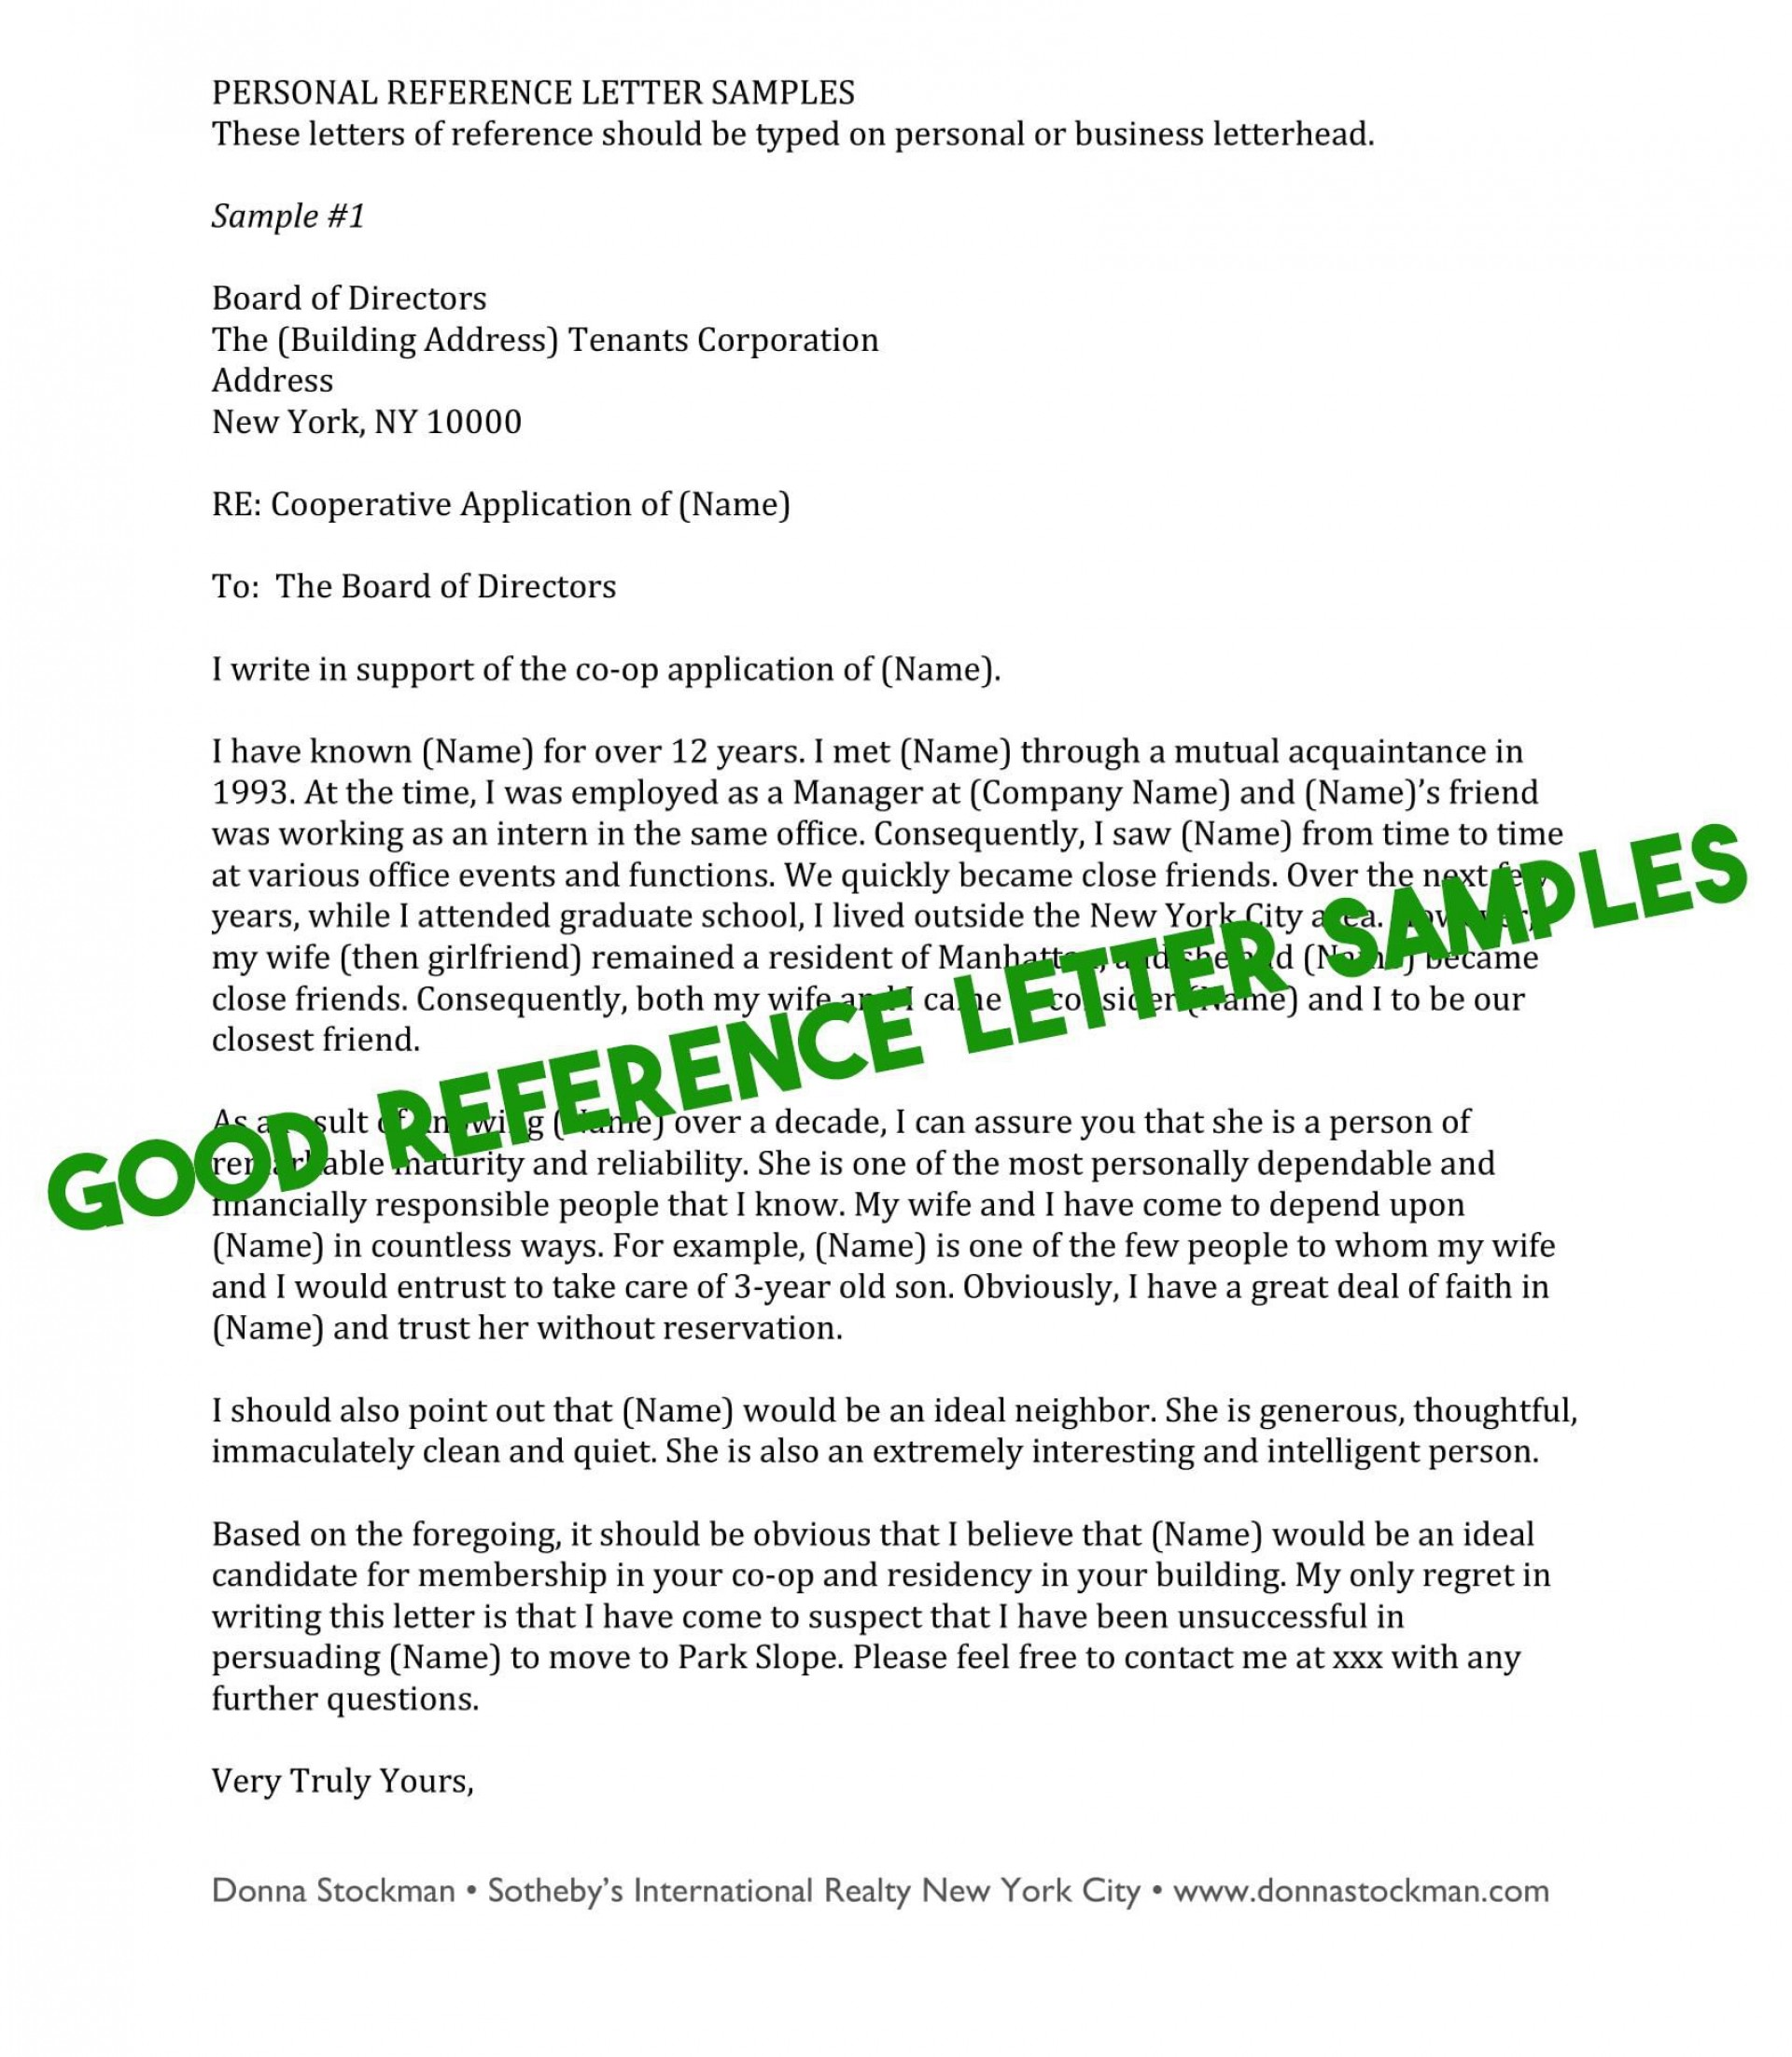 009 Phenomenal Free Reference Letter Template For Tenant Highest Quality 1920